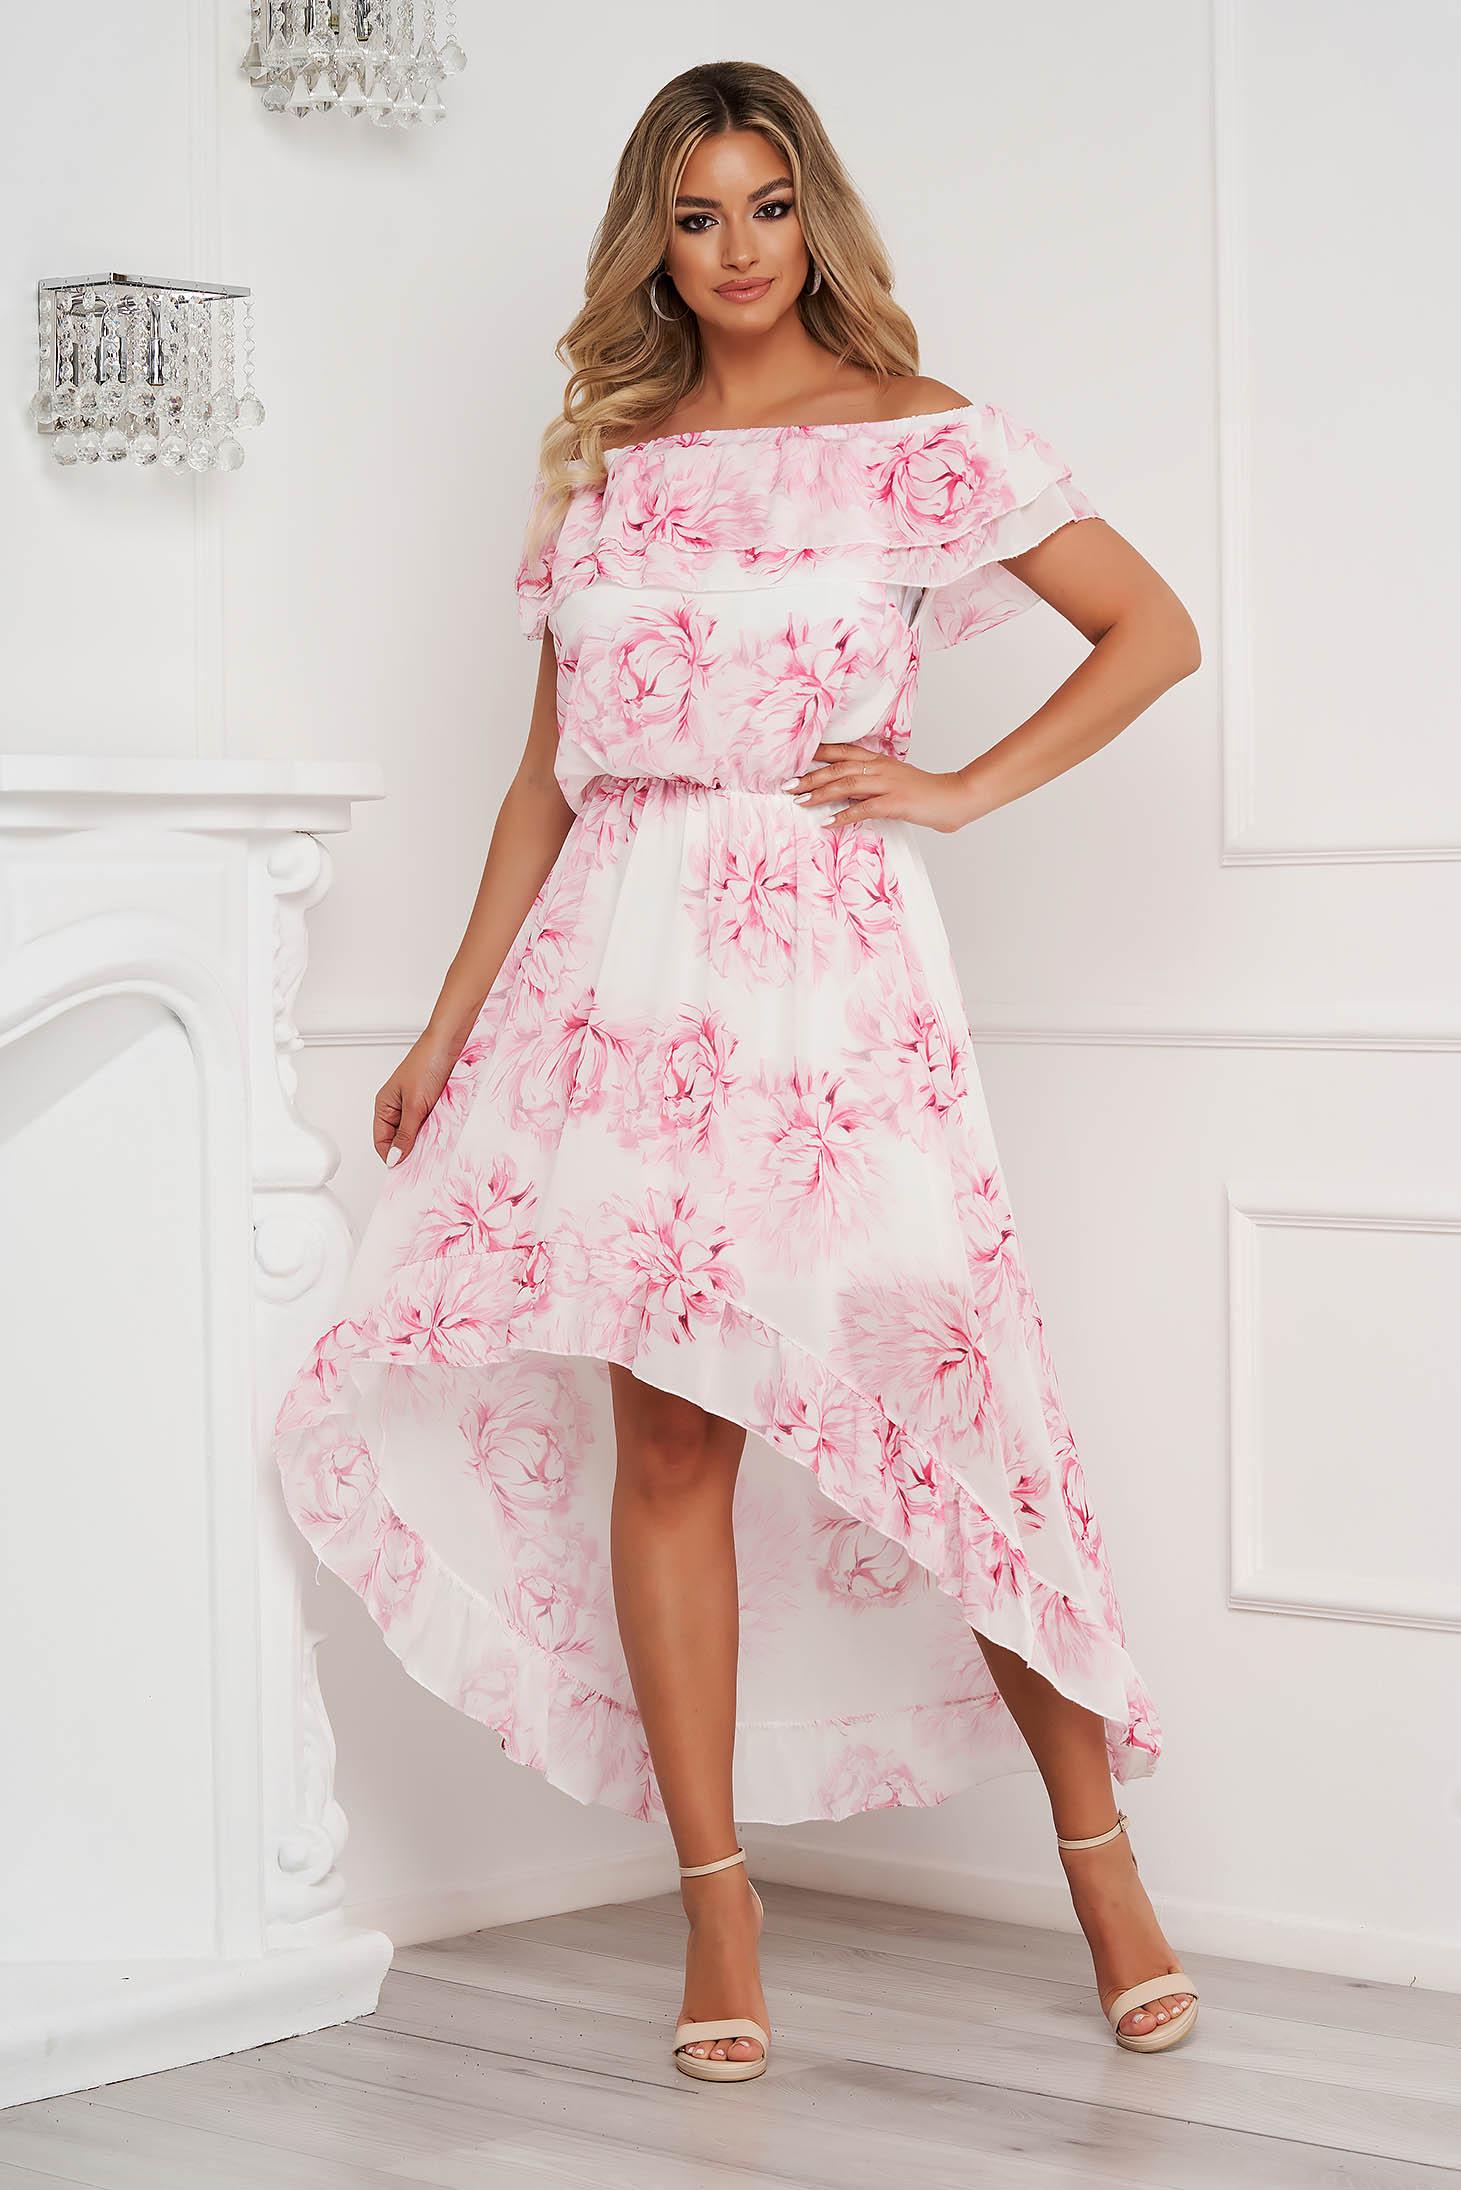 Dress asymmetrical from veil fabric naked shoulders frilly trim around neck and cleavage line